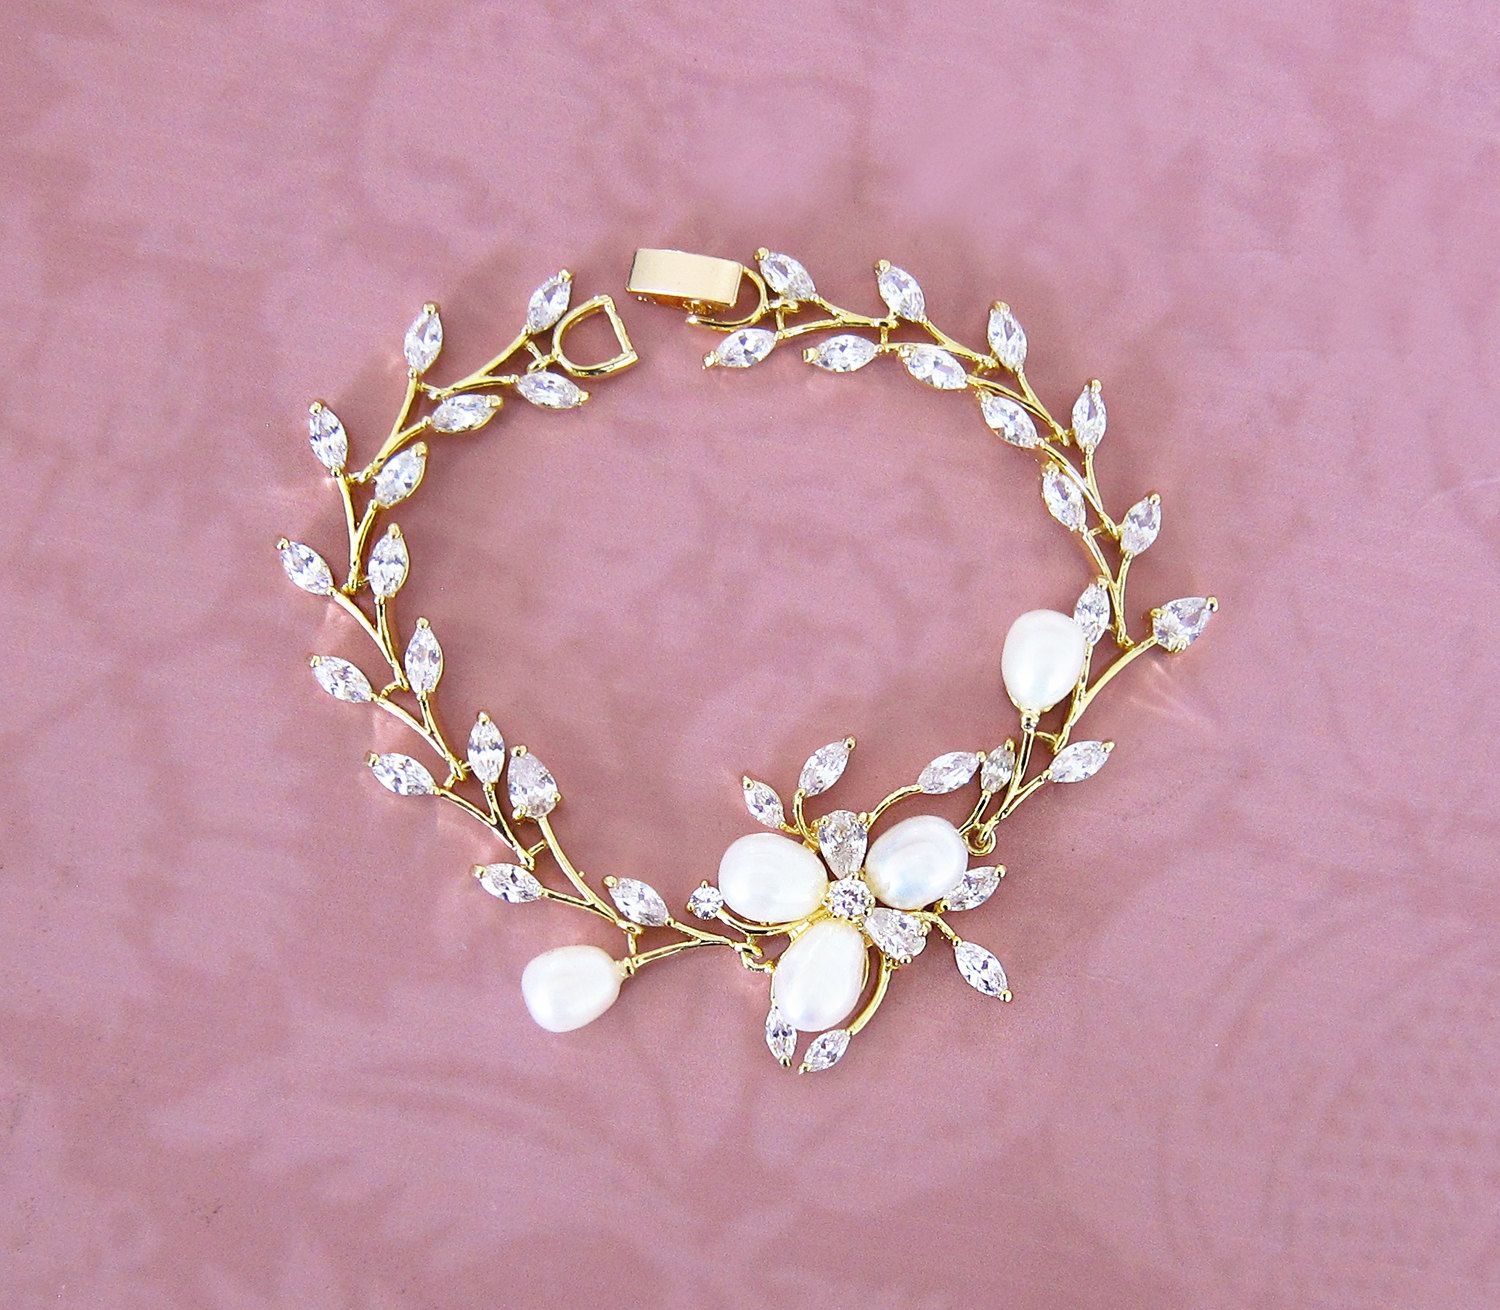 bridal delicate day wedding bracelets products jules bellagio crystal jewellery athena pearl bracelet and ivory